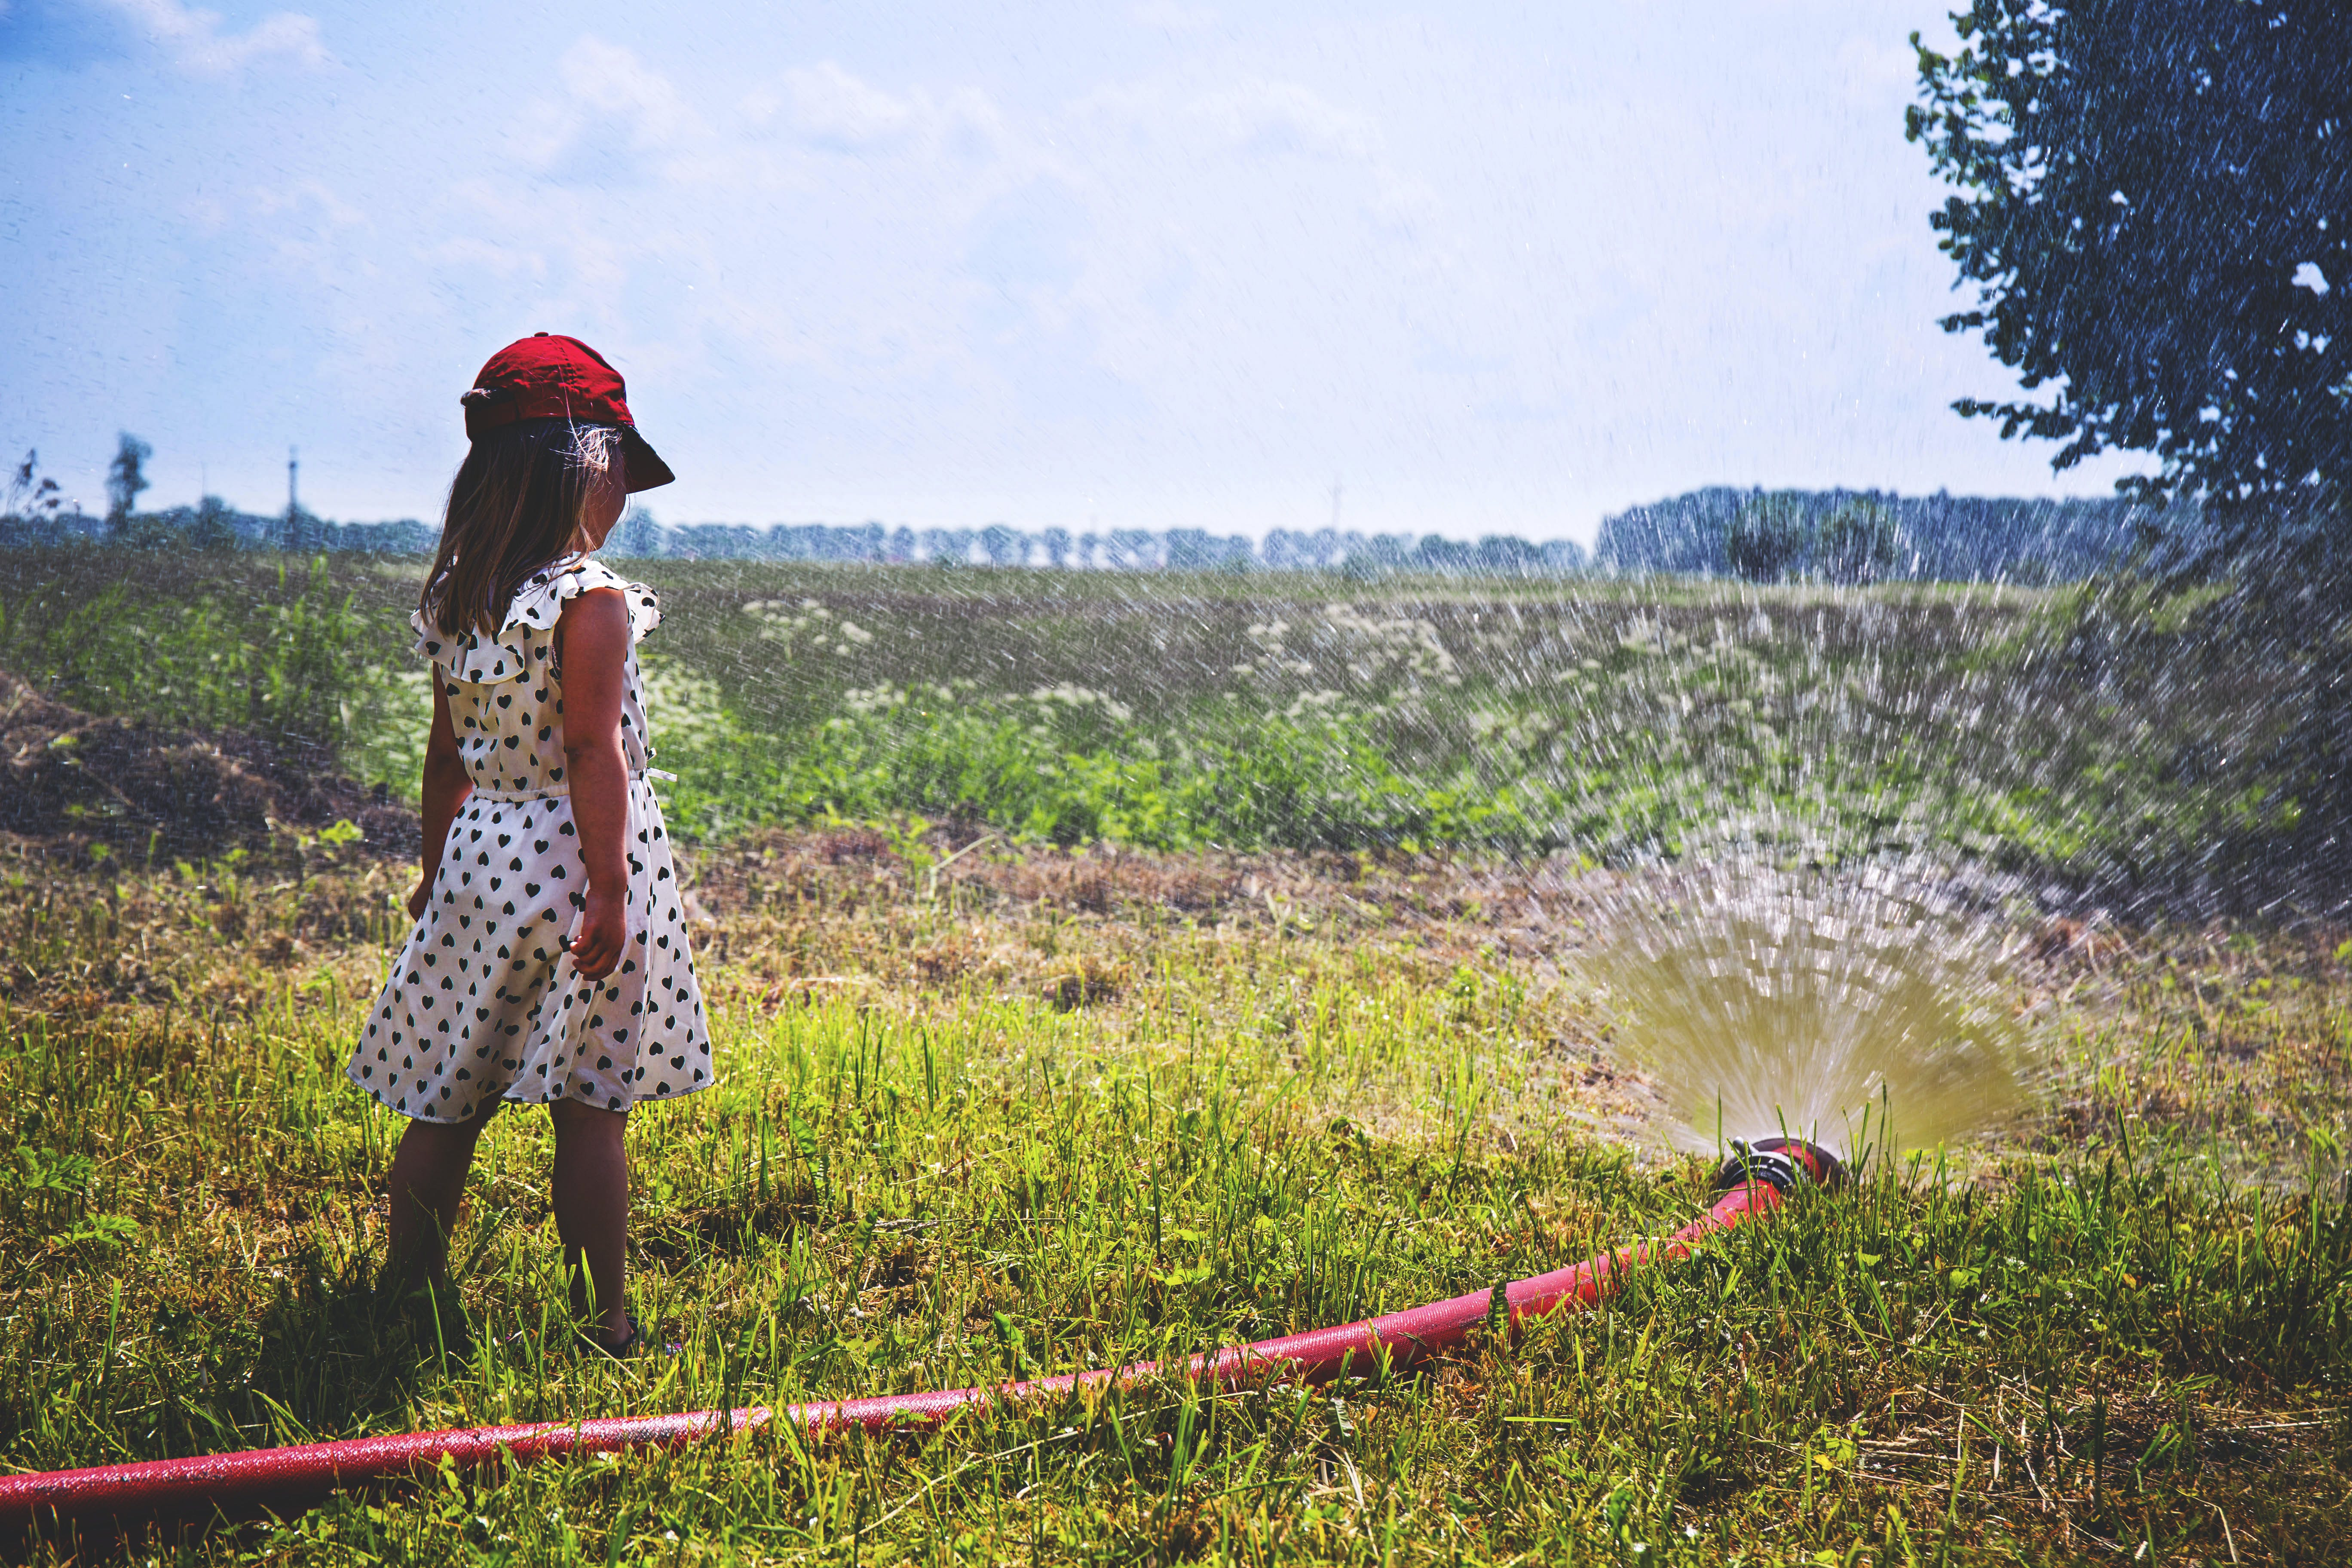 Girl on Green Grass Near Red Hose While Pumping Water during Daytime